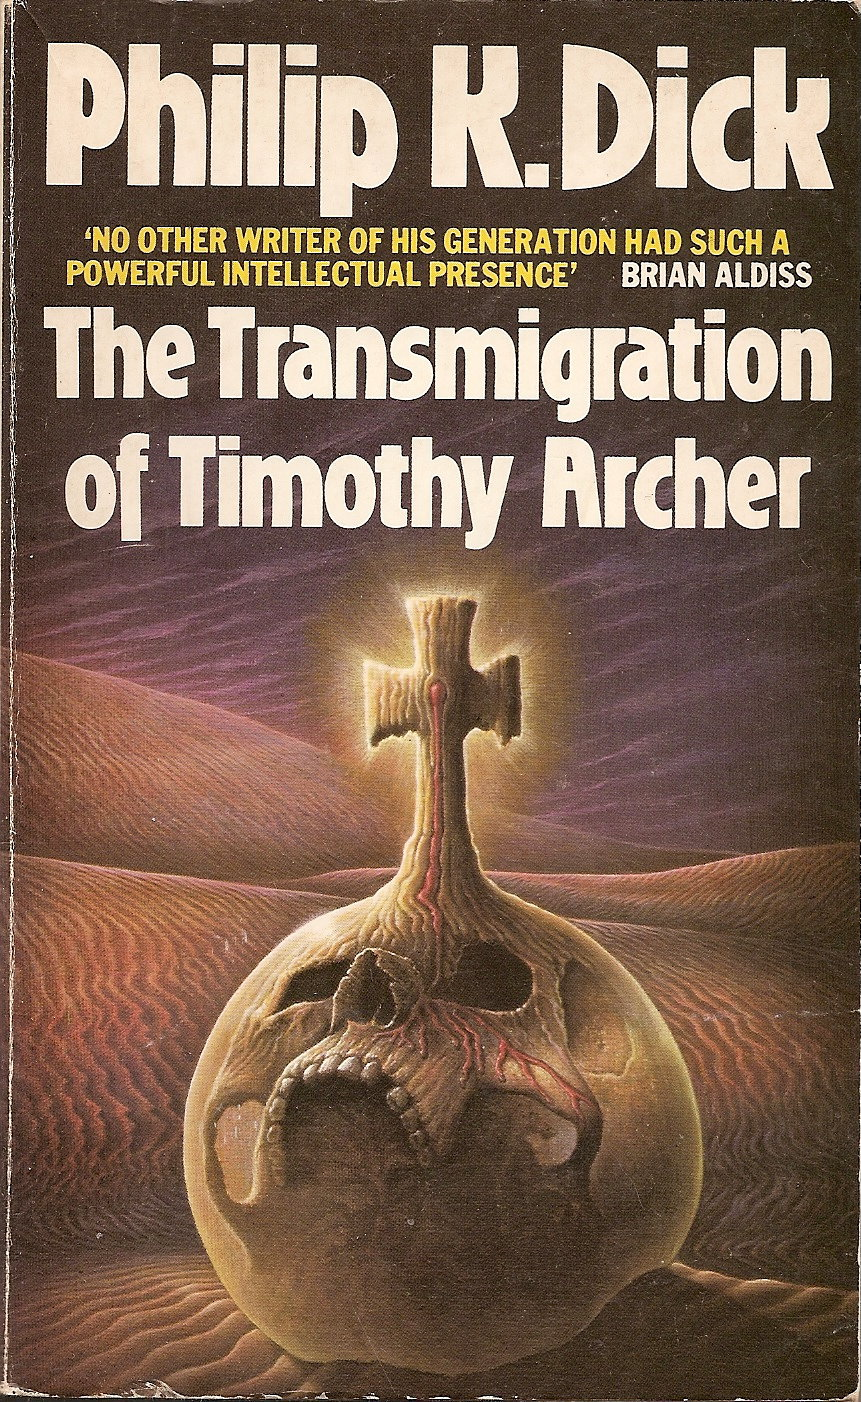 Dick 1981 - The Transmigration of Timothy Archer.jpg